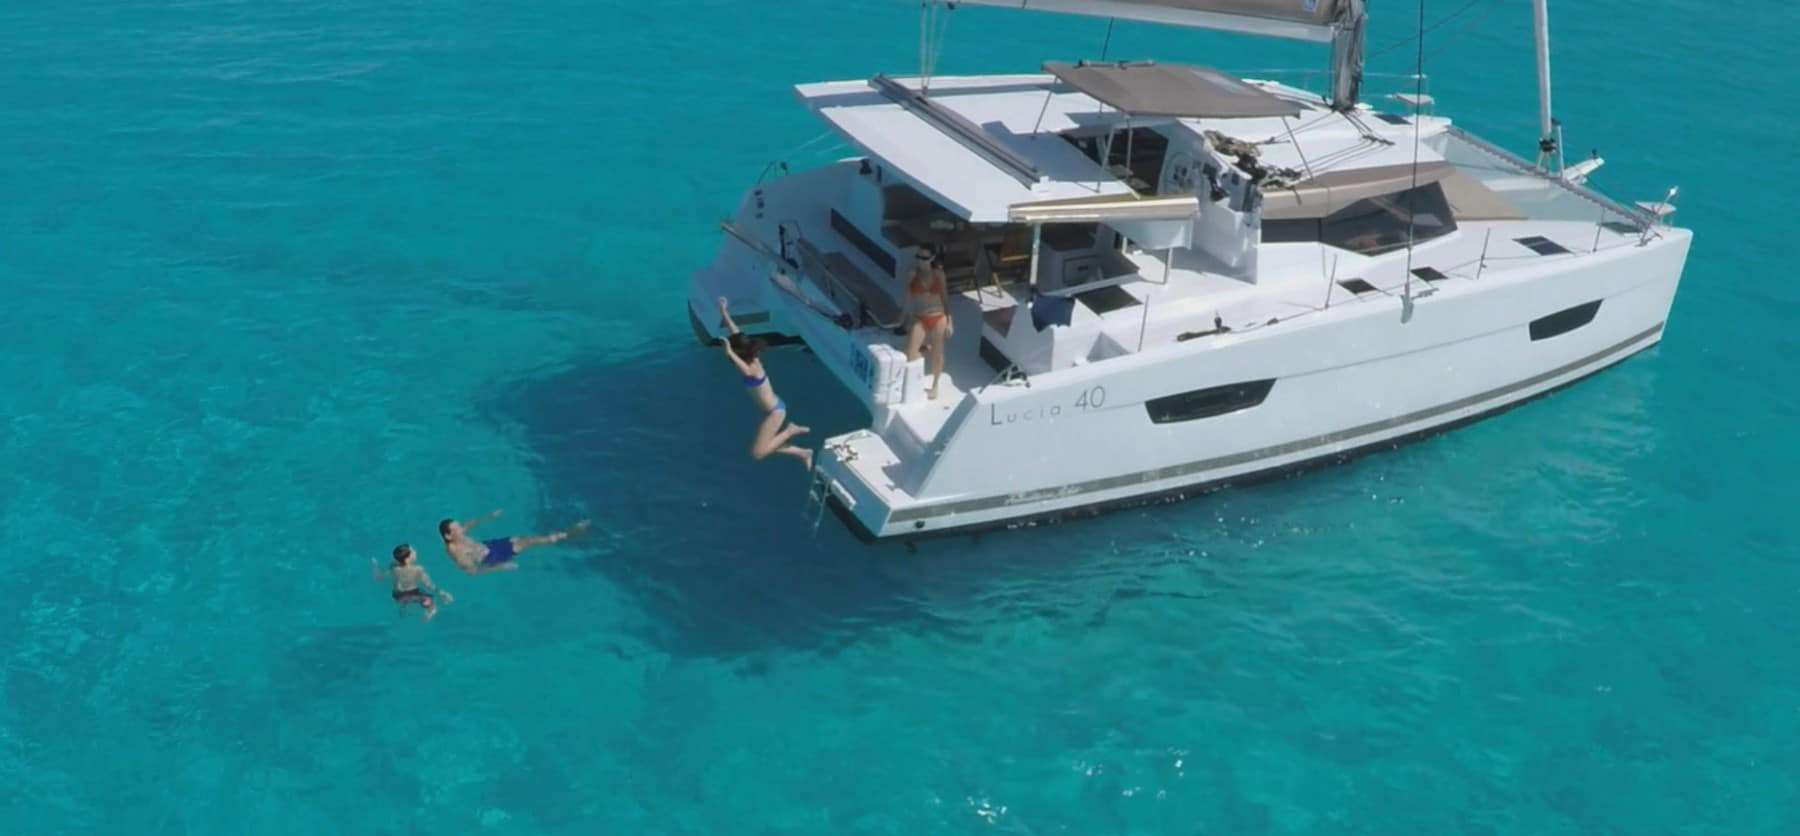 Two couples having a great time bathing in the crystal clear water that the Fountaine Pajot Lucia 40 is floating in